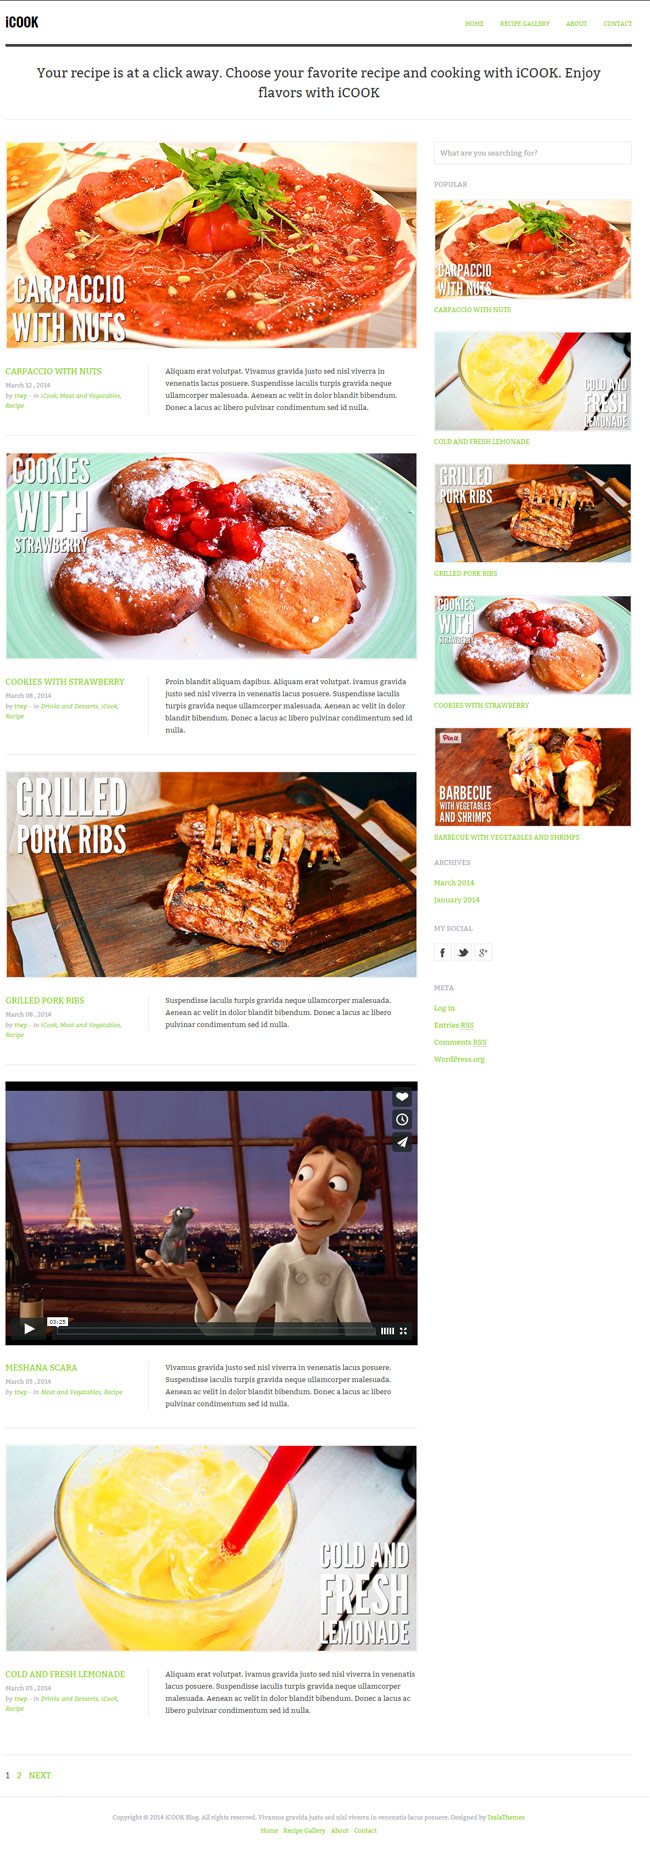 iCook-Food-Blog-WordPress-Theme